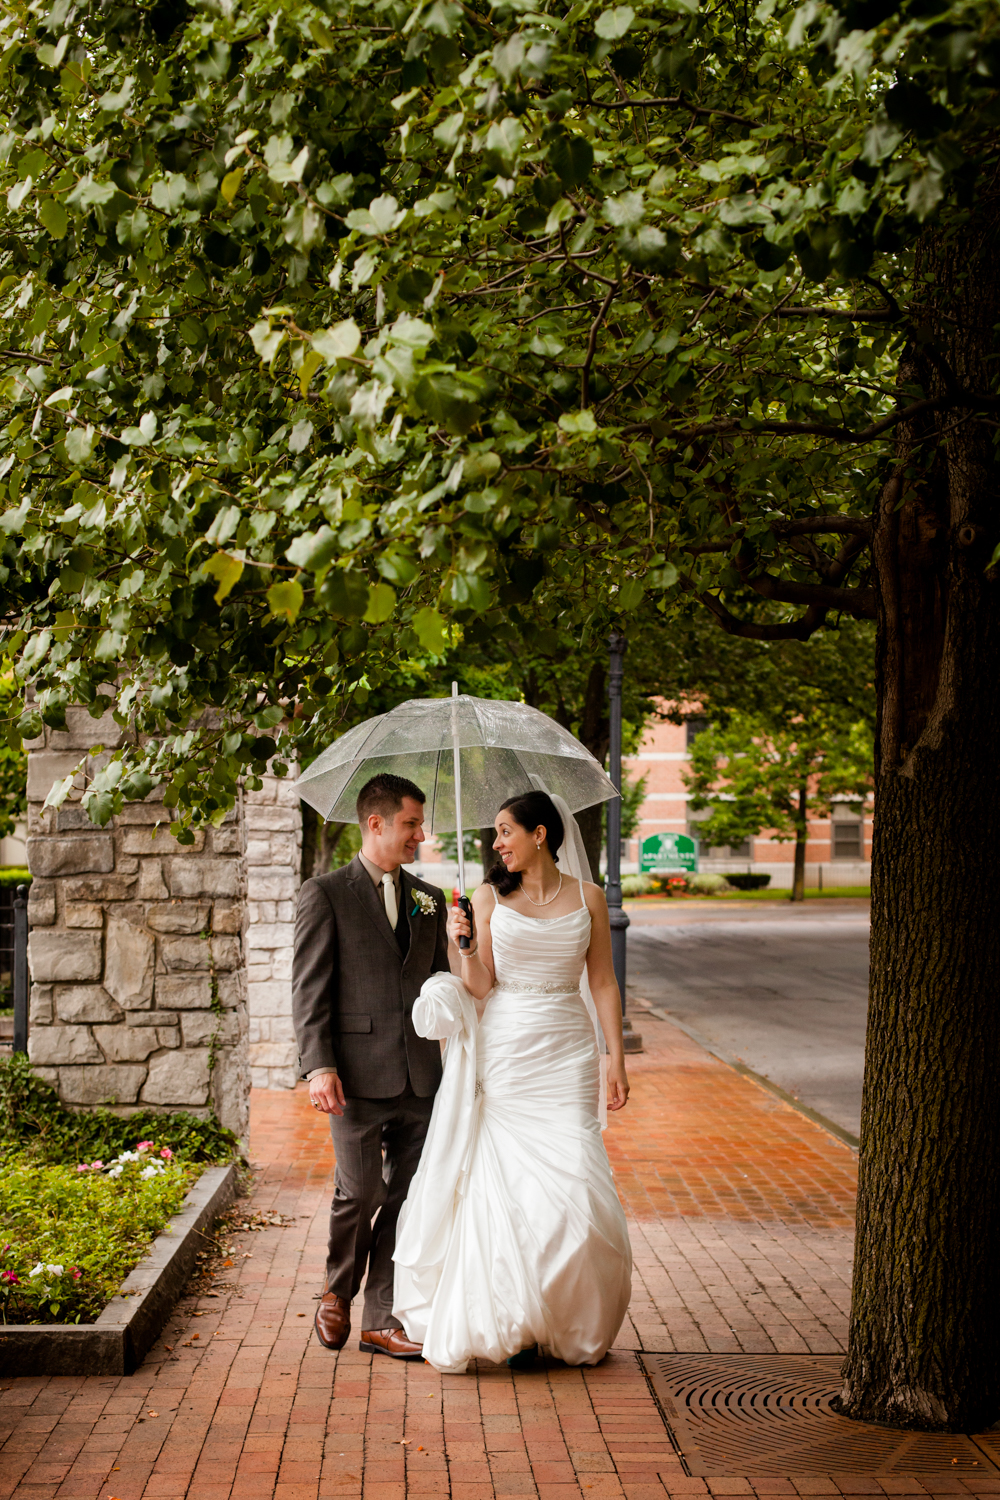 Bride and groom share a moment under an umbrella